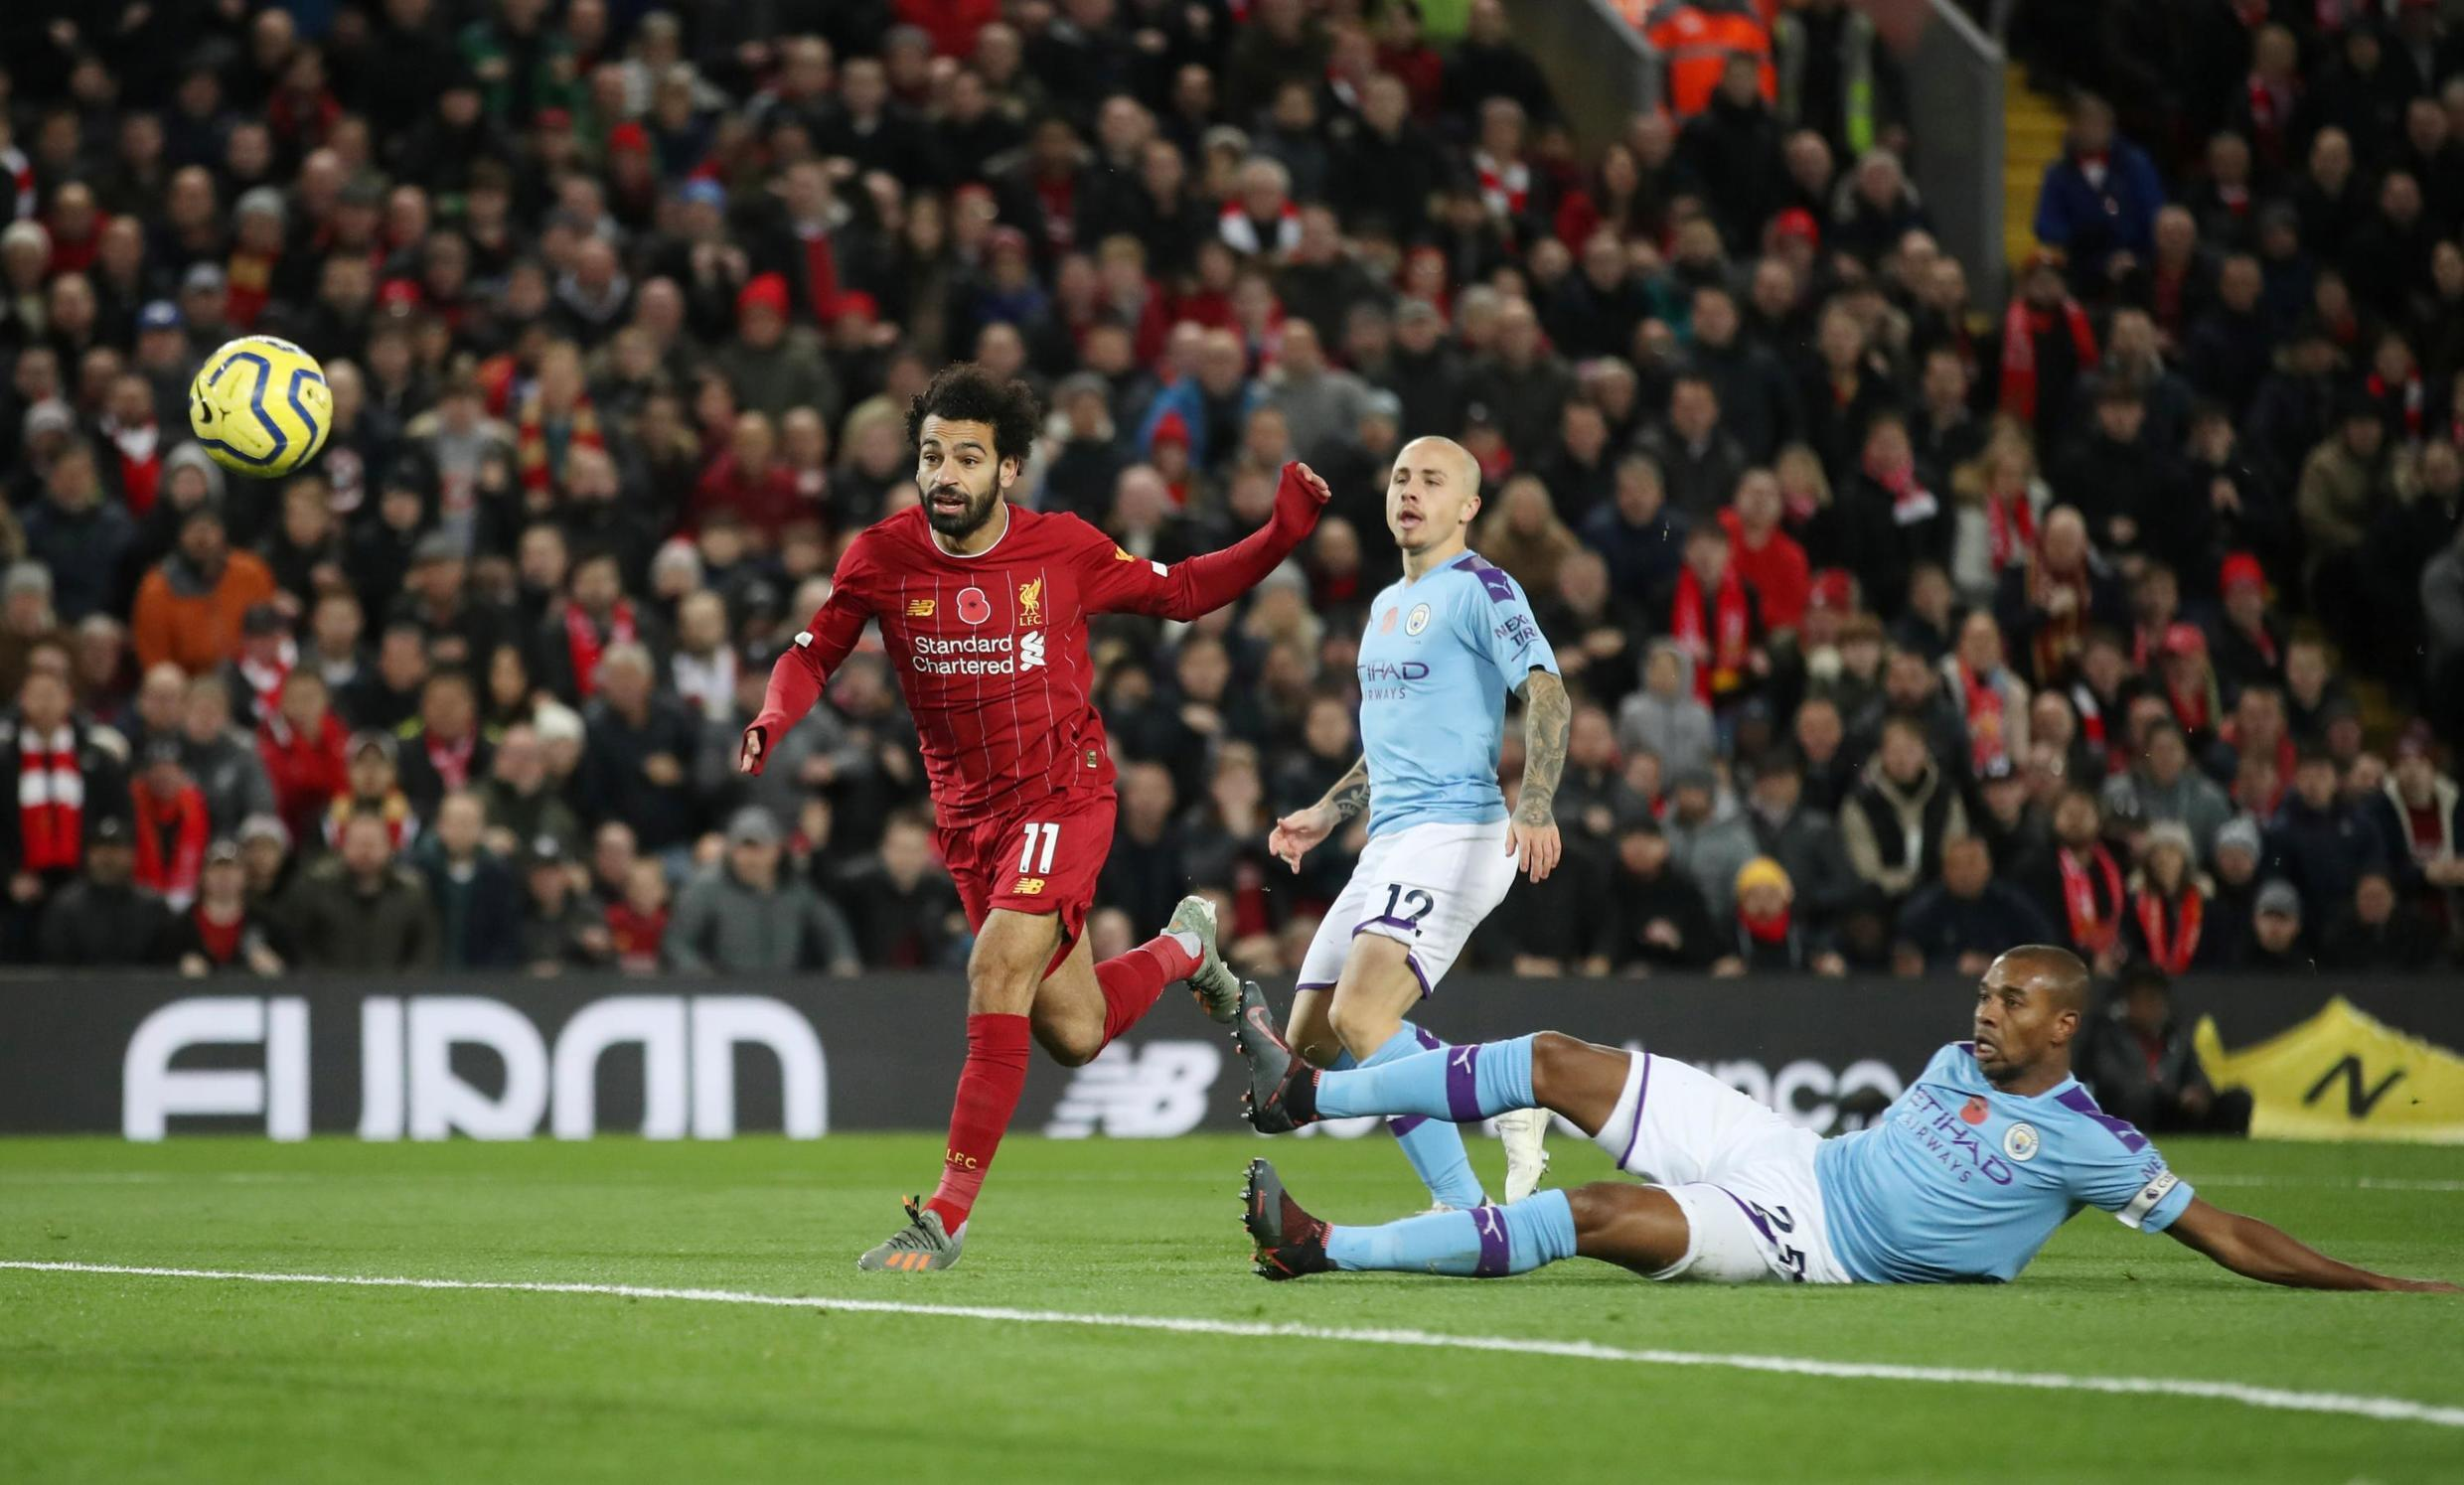 Mohamed Salah inscrivant le deuxième but de Liverpool contre Manchester City, le 10 novembre 2019.